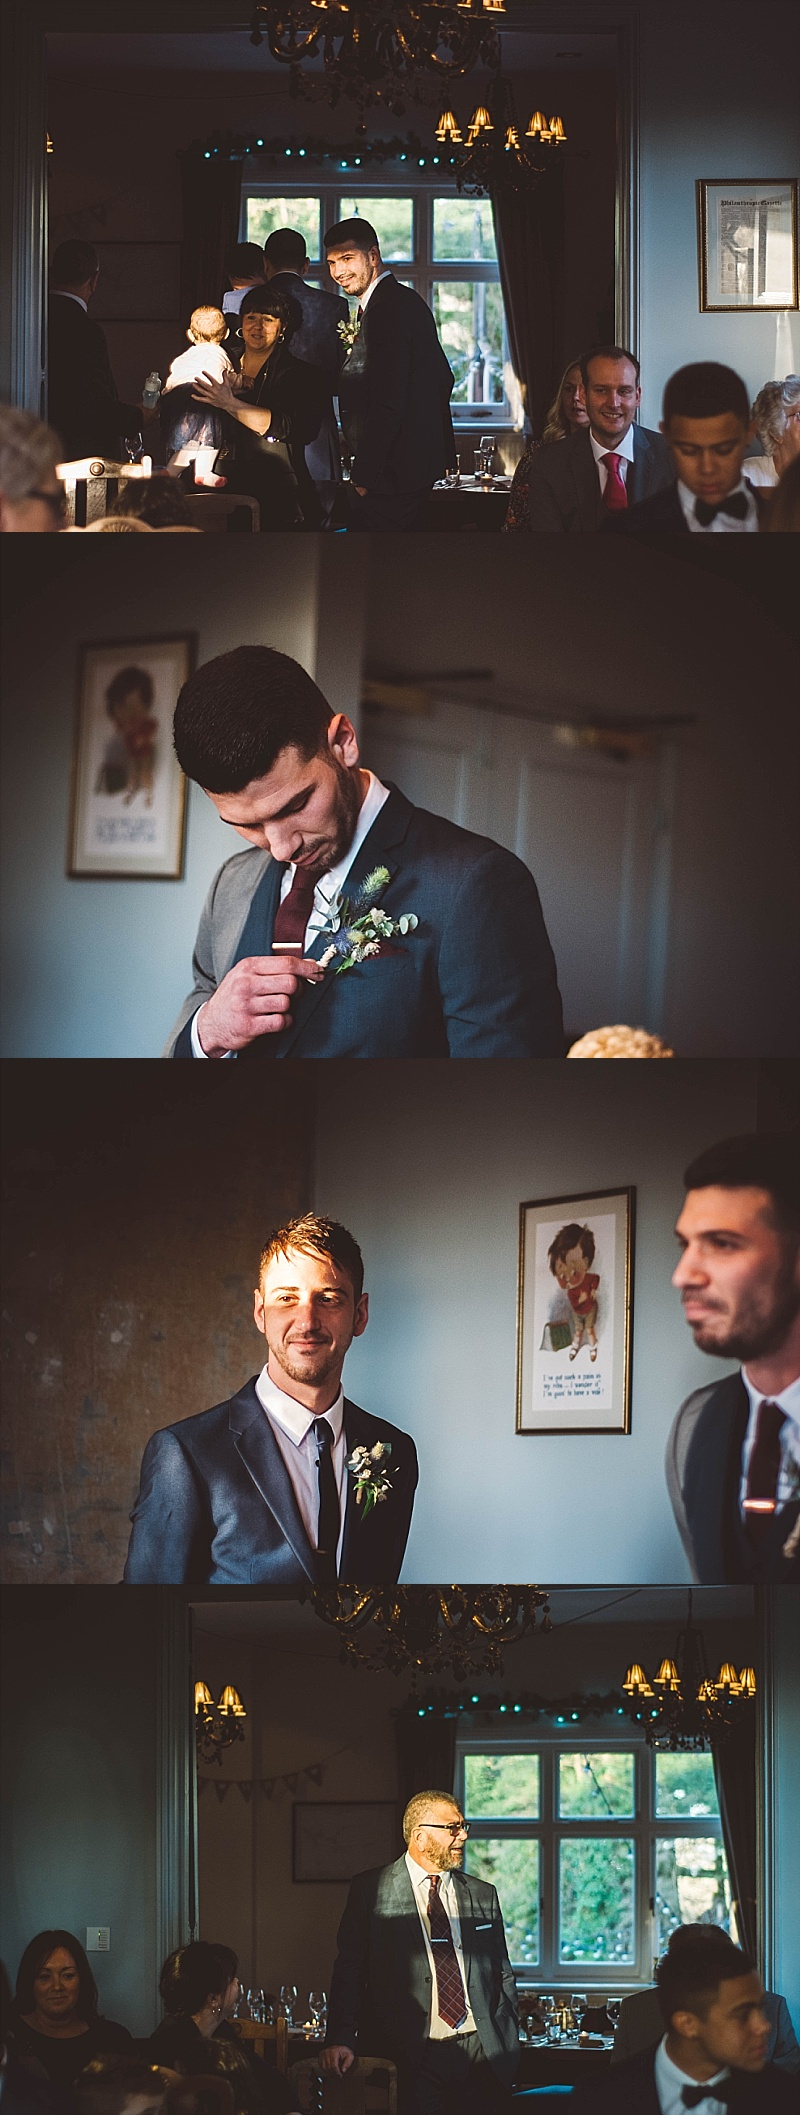 Purple Pear Tree Photography Alternative wedding photographer located in Essex, specializing in heartfelt, creative, documentary, and quirky wedding photography Essex, London and UK wedding photography  (87).jpg